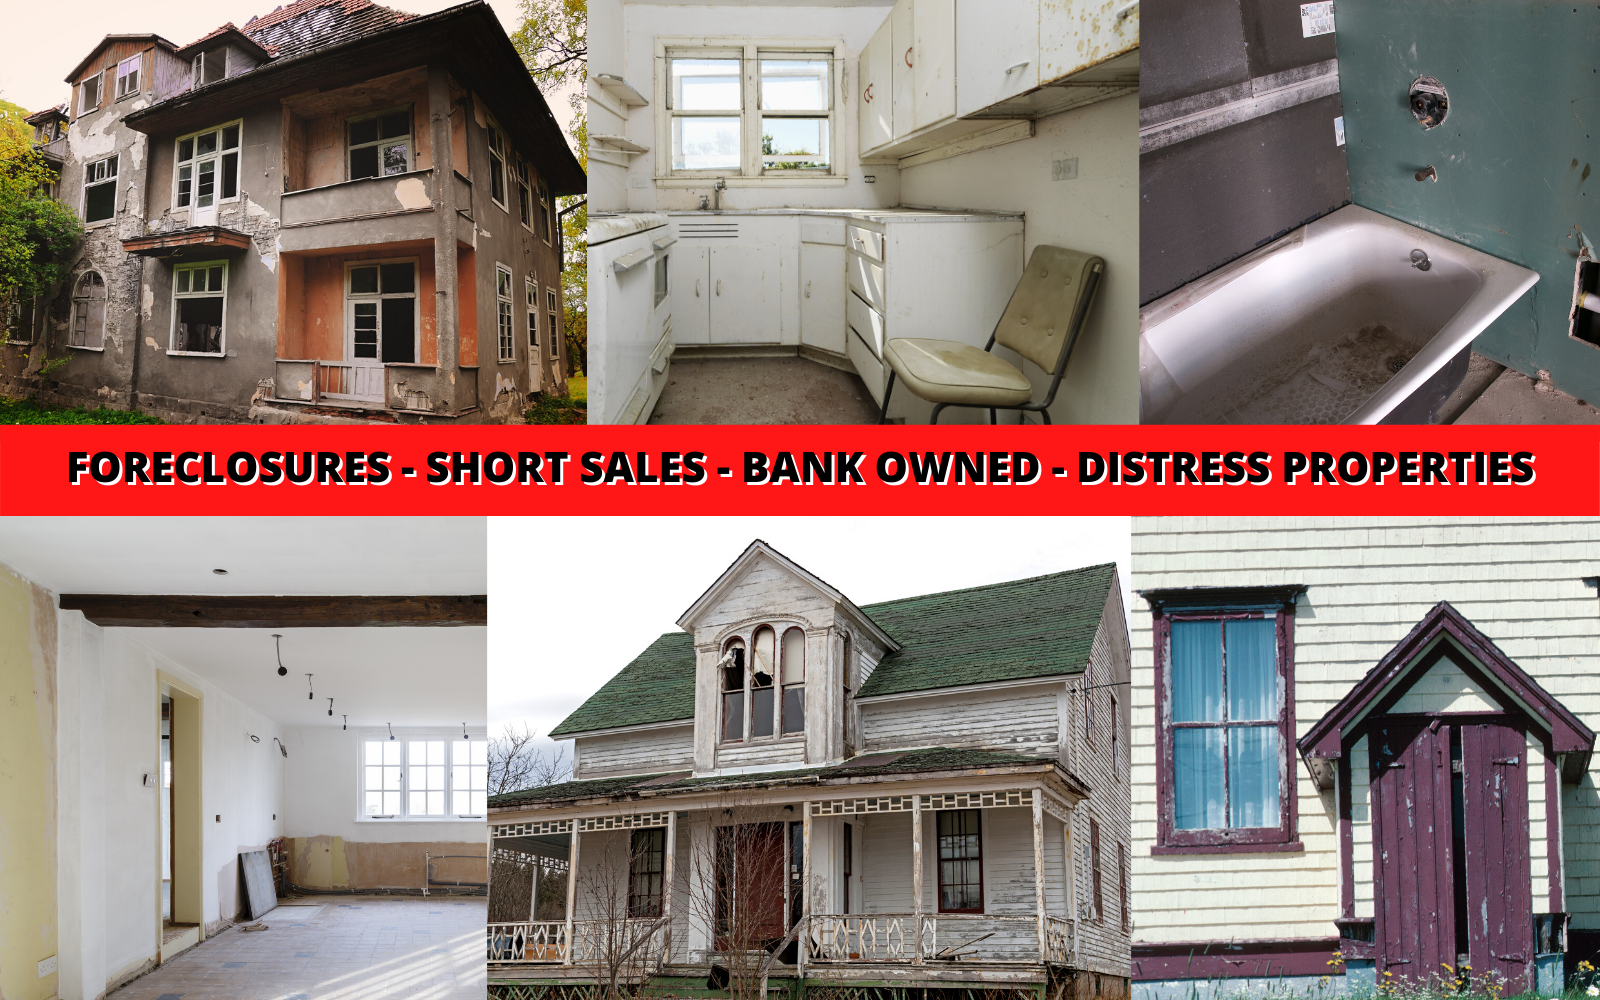 FORECLOSURES - SHORT SALES - BANK OWNED - DISTRESS PROPERTIES